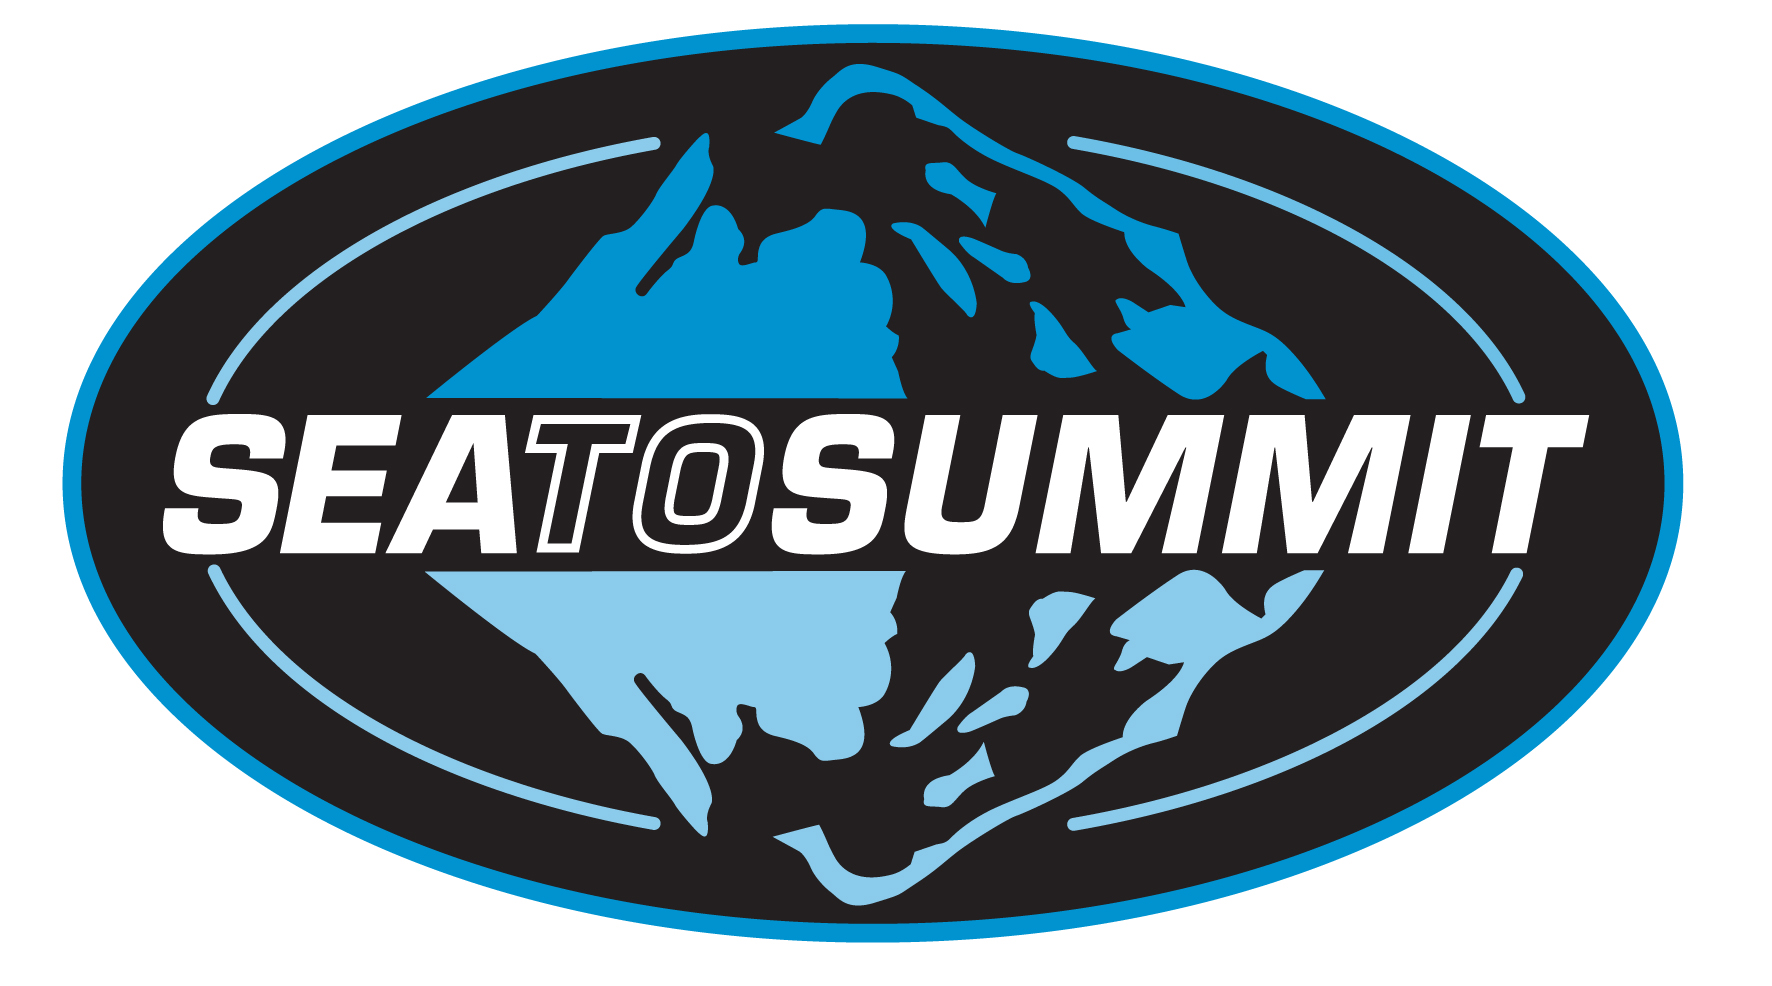 Sea to Summit - Sea to Summit strives to provide the ultimate solutions for outdoor enthusiasts looking for innovative, durable, lightweight and compact gear. http://www.seatosummitusa.com/